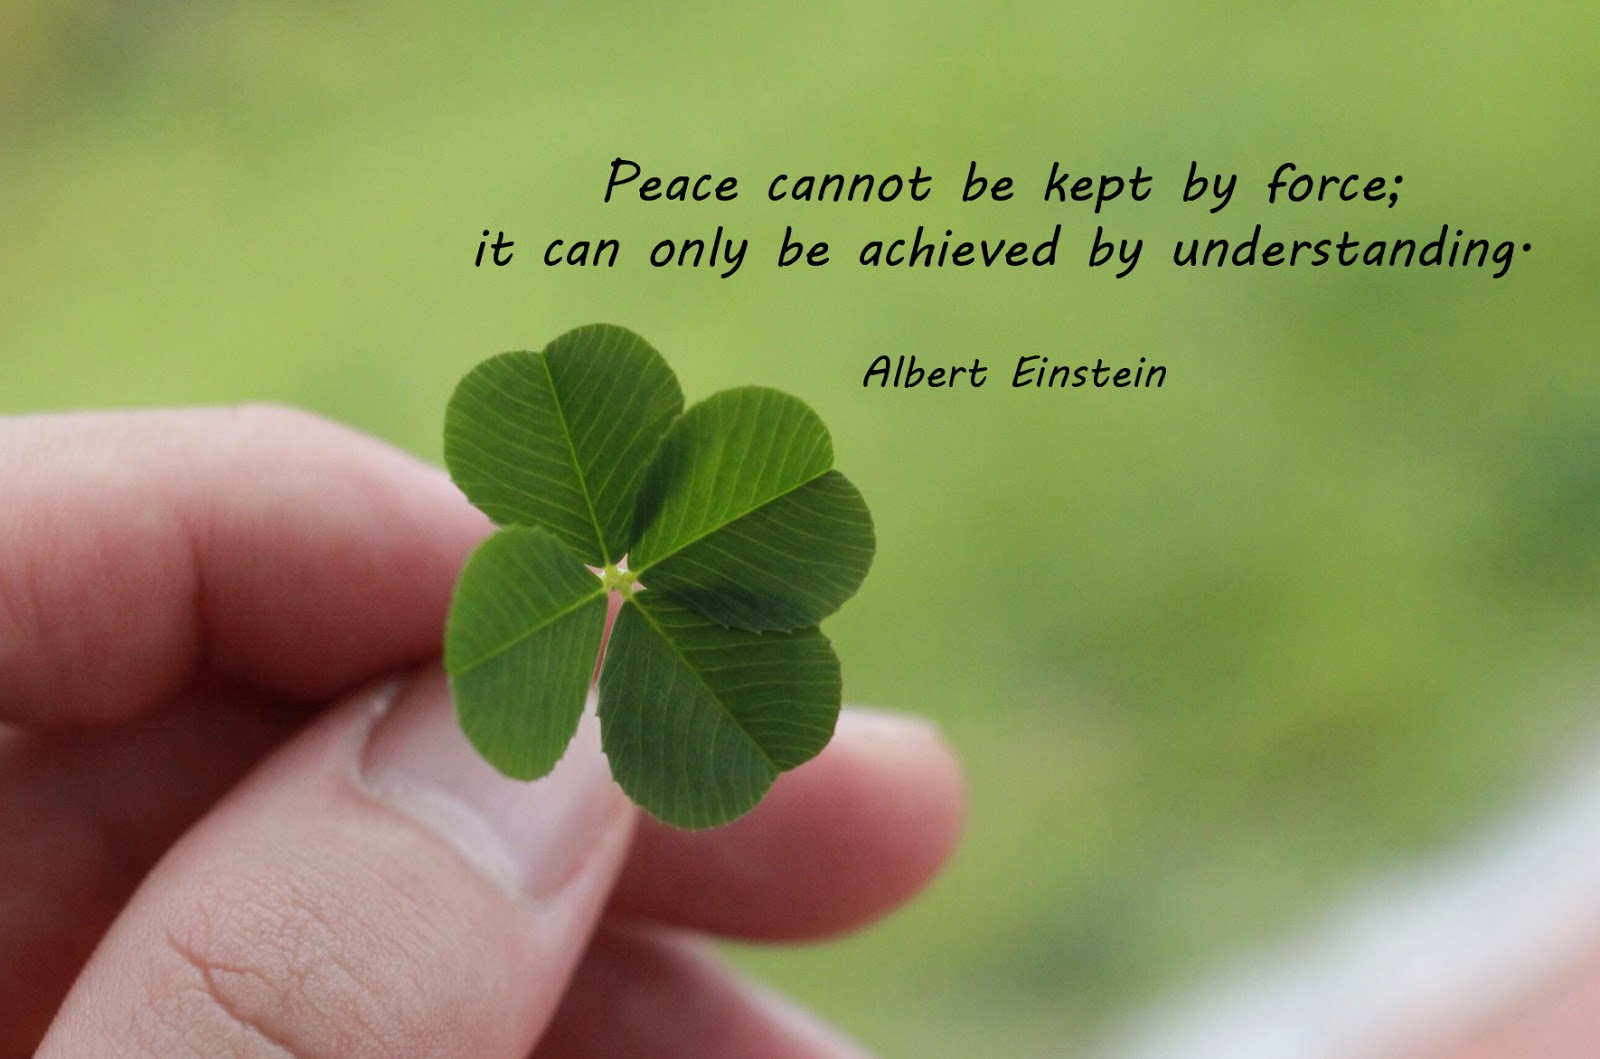 Quotes About World Peace Day: 40+ Inspirational Peace Quotes